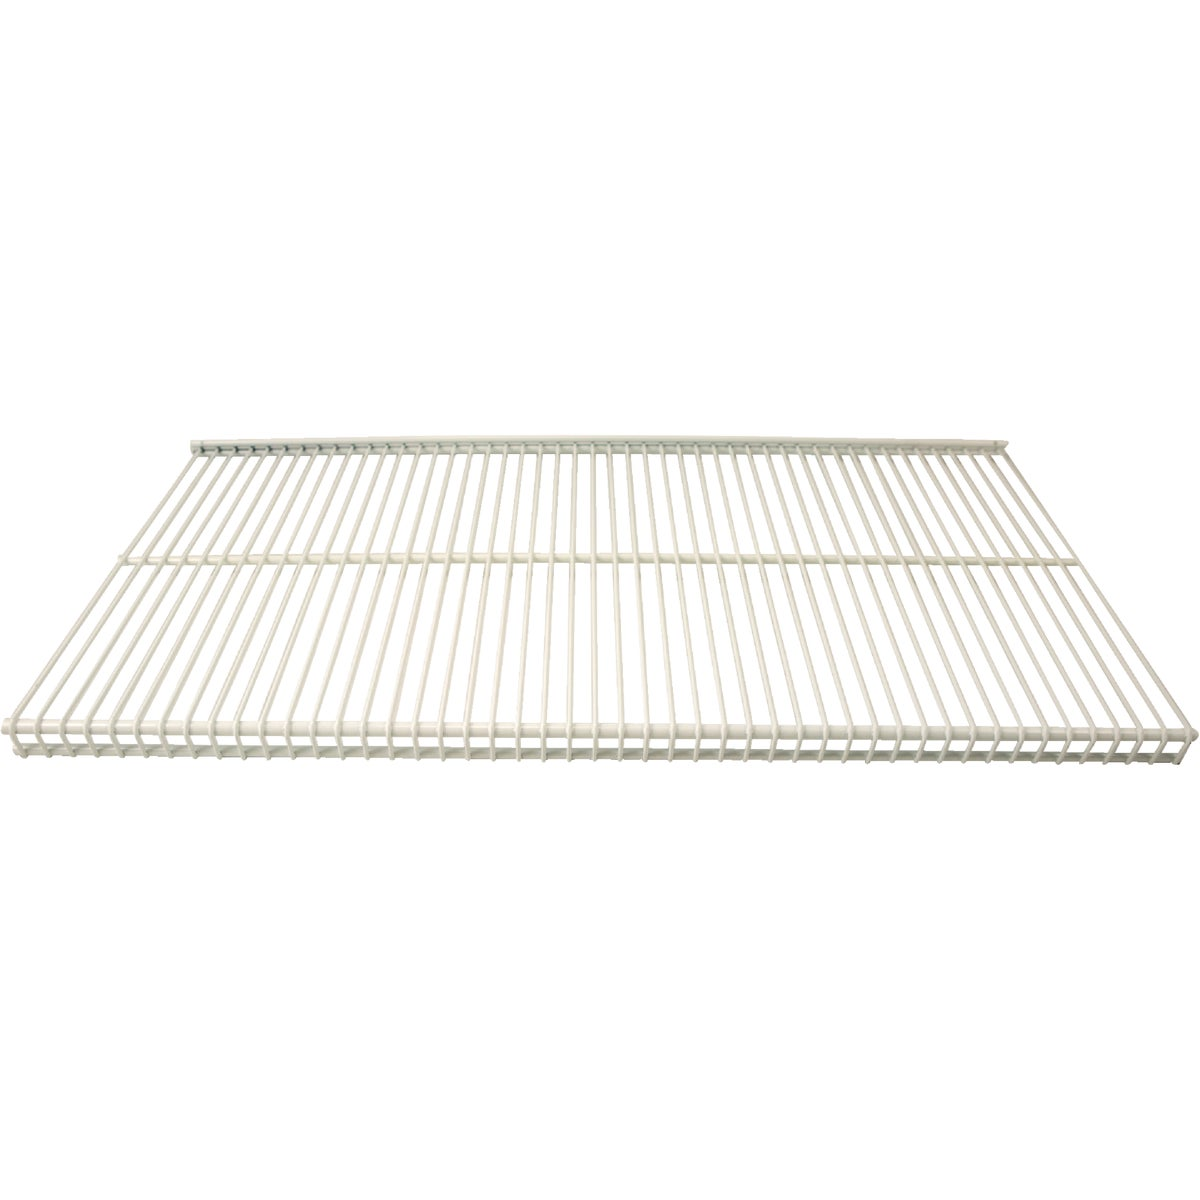 16X72 PROFILE SHELF - 1813167211 by Schulte Corp